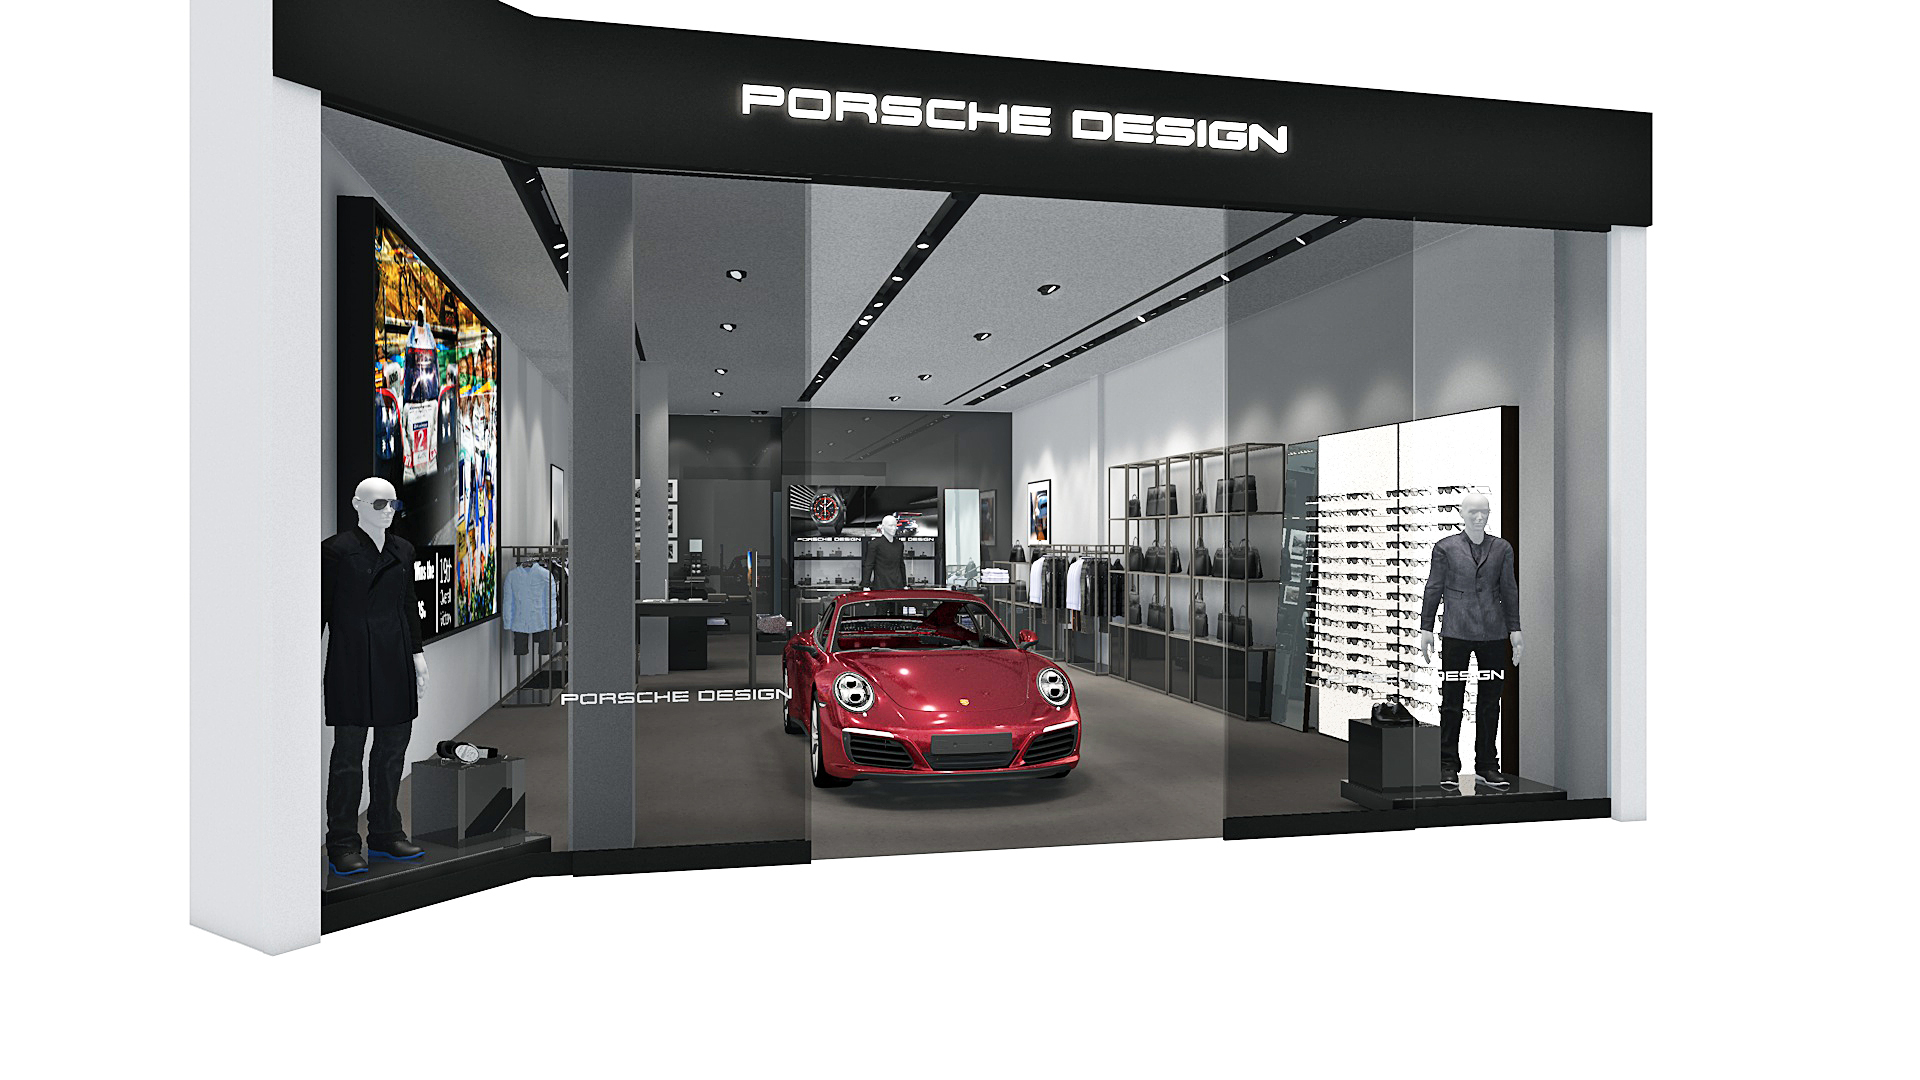 A rendering of the new Porsche Design store in South Coast Plaza.